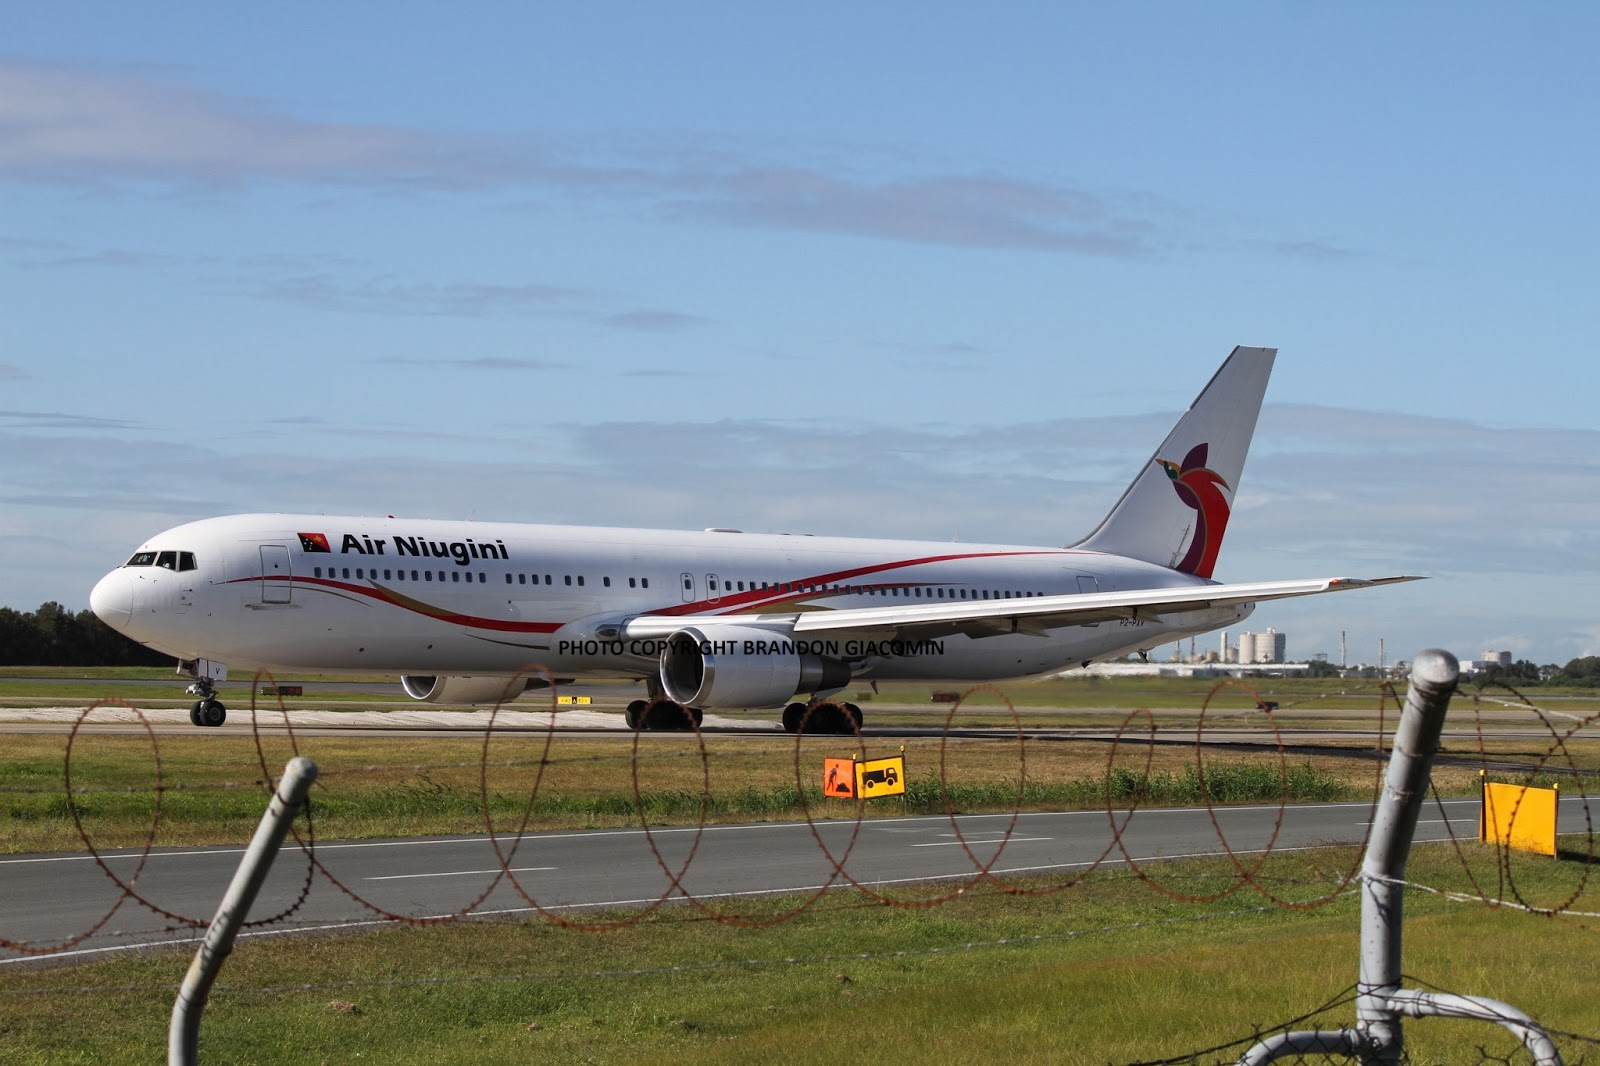 Queensland Plane Spotting Brisbane Airport Photos May 7